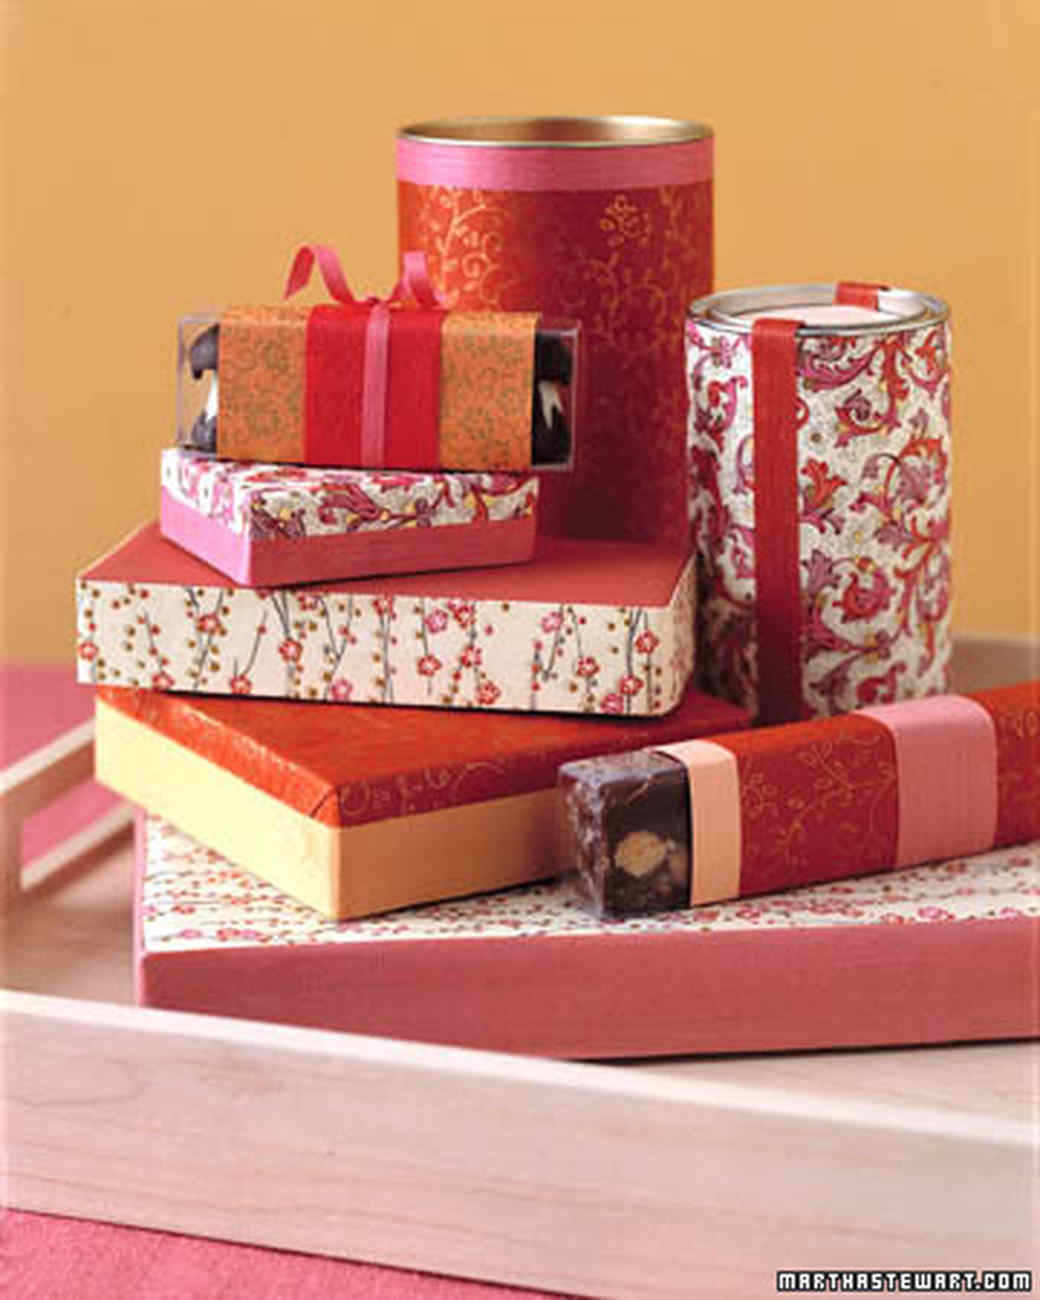 a99882_giftboxes.jpg